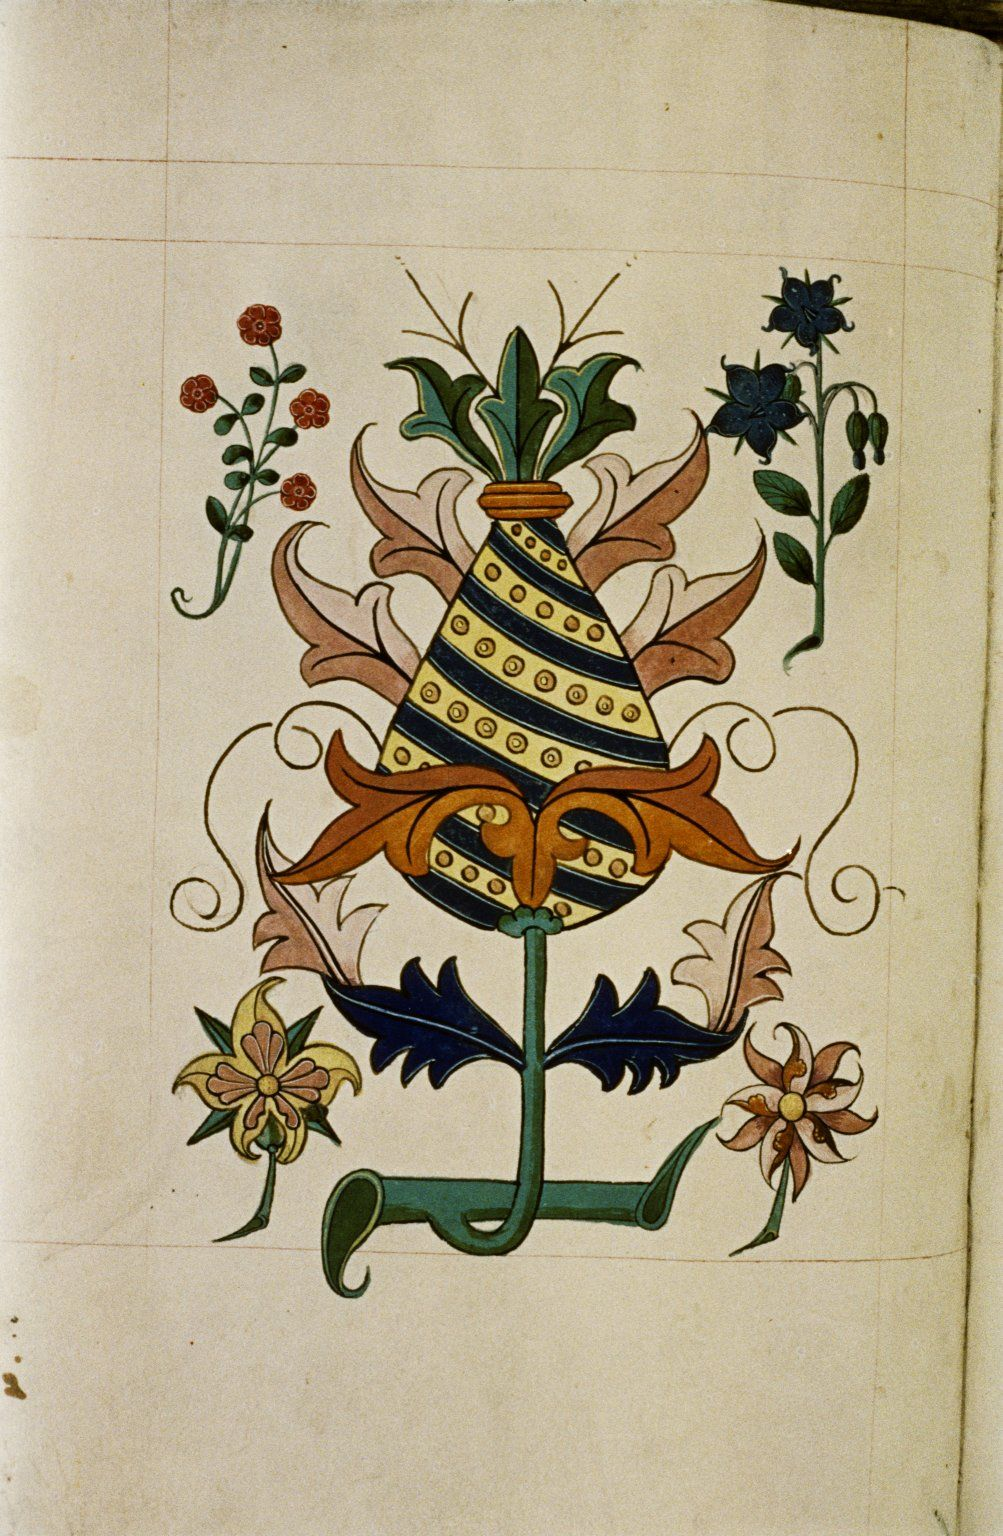 Tudor pattern book 1520 retronaut love this 16th c pimpernel blue flower in a stylised design from the tudor pattern book ashmole manuscript fol bankloansurffo Image collections